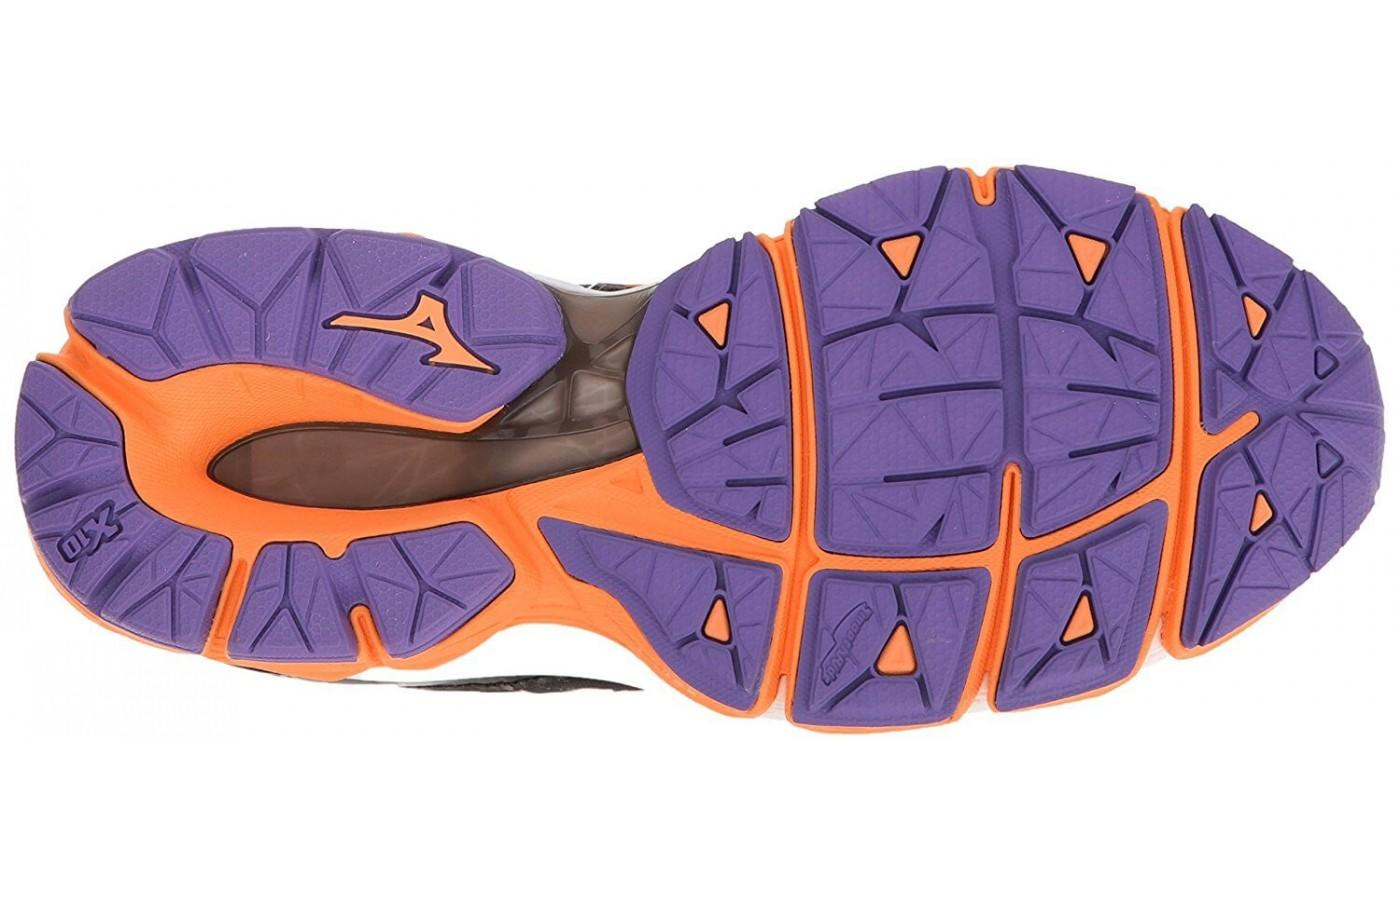 The outsole of the Mizuno Wave Horizon uses durable X10 rubber